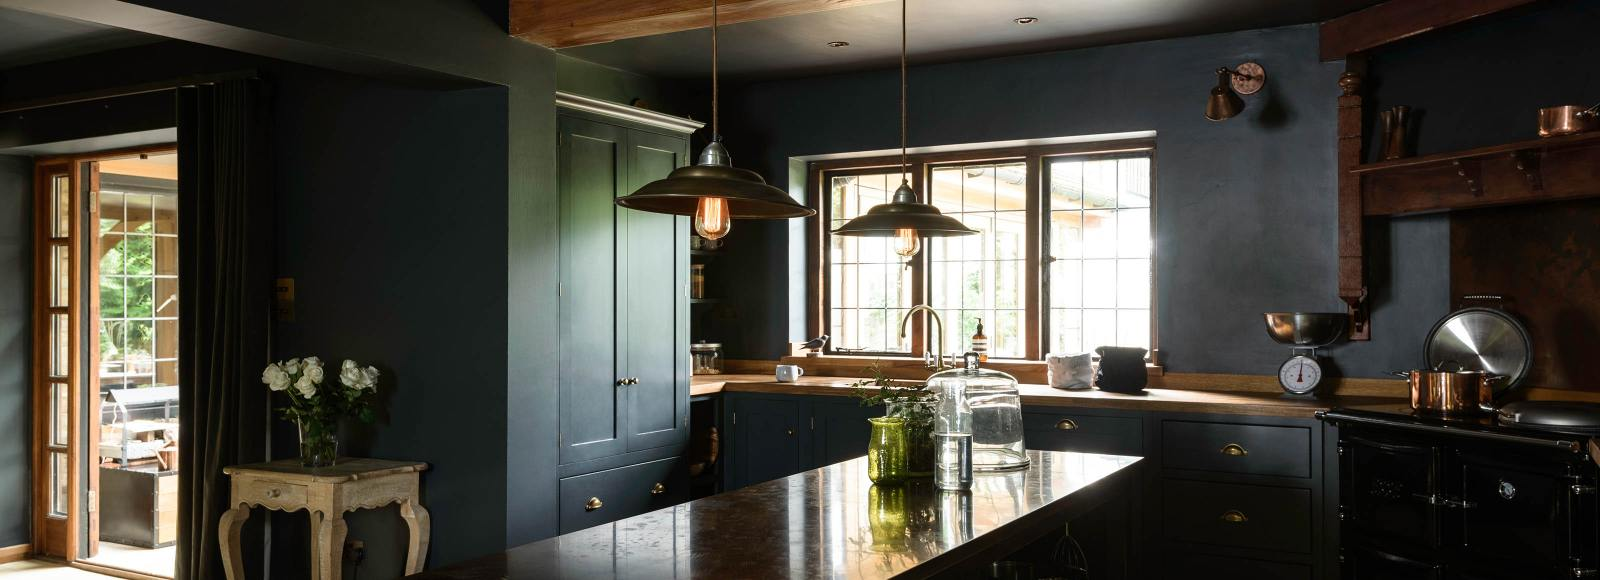 deVOL Kitchens - Simple Furniture, Beautifully Made - Kitchens ...